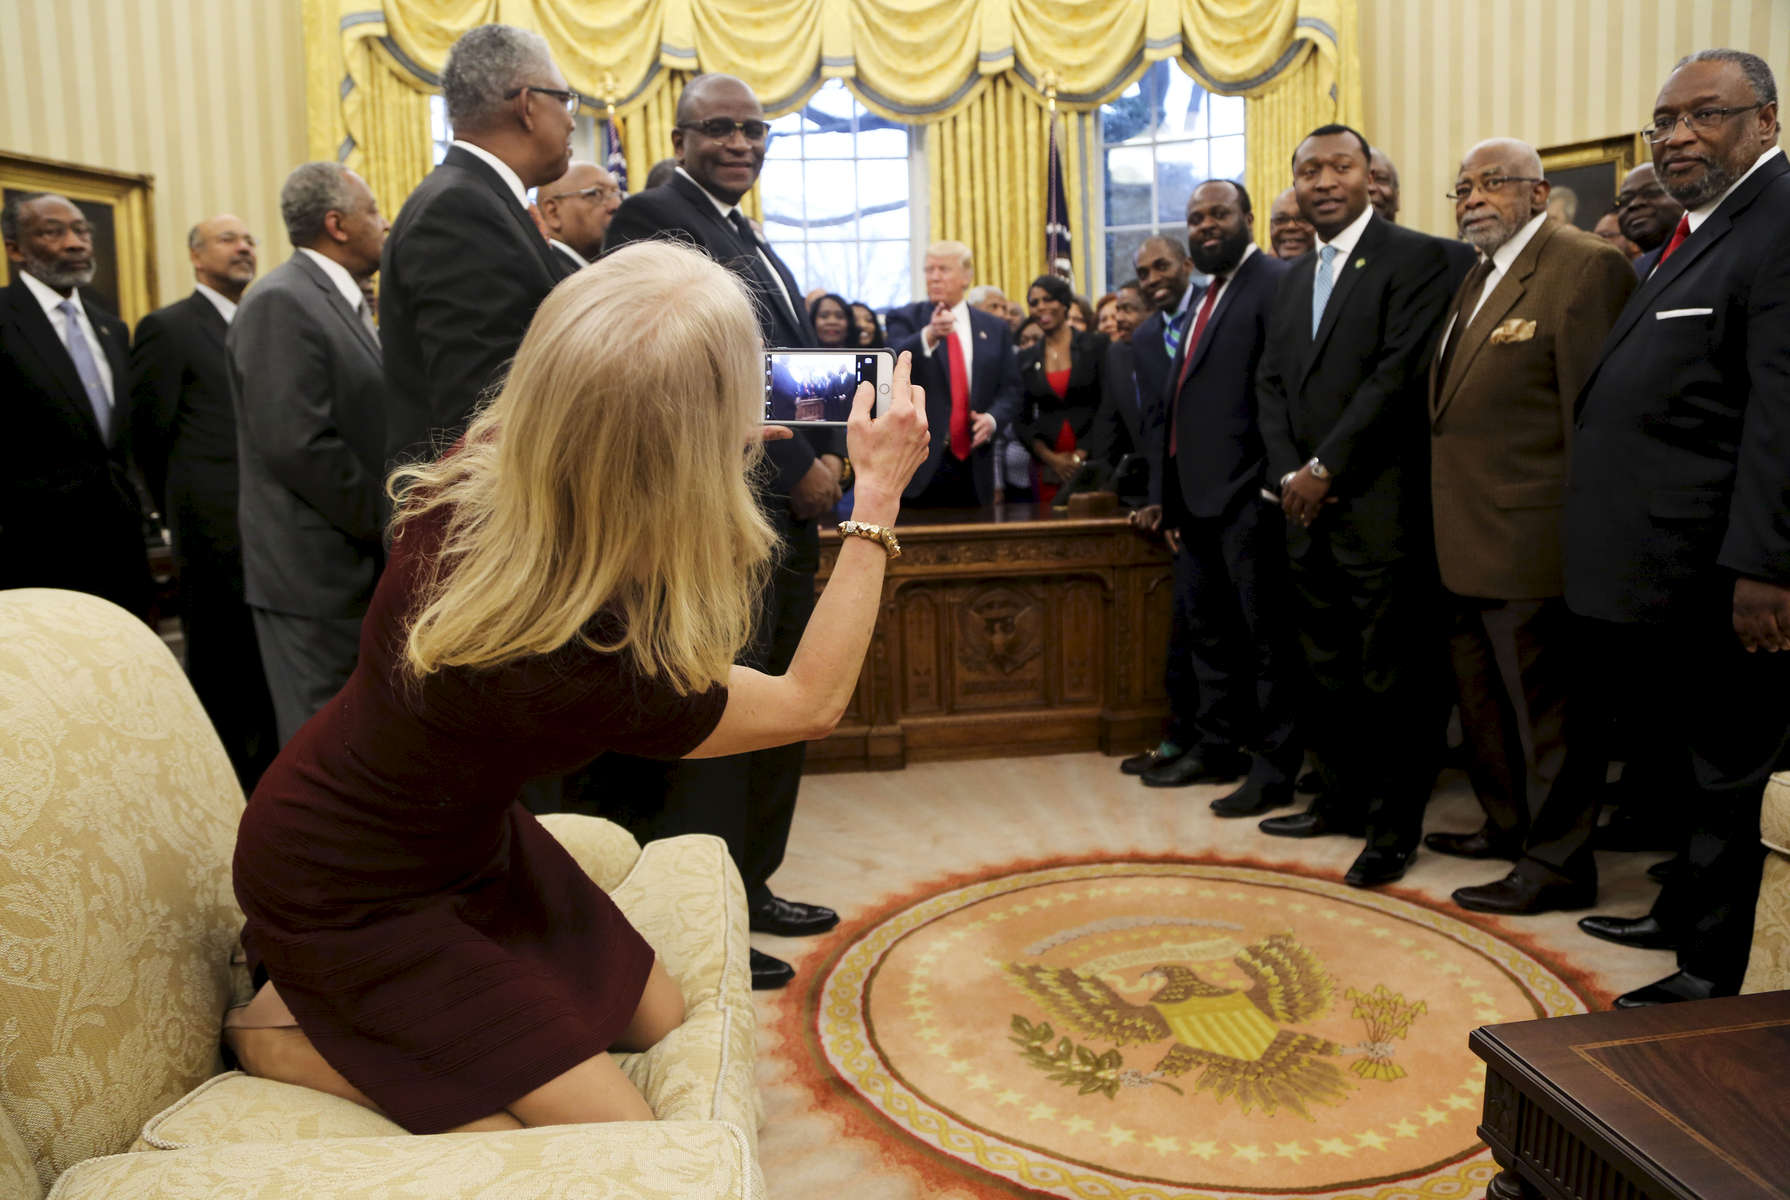 Counselor to the President Kellyanne Conway takes a picture of U.S. President Donald Trump with members of the Historically Black Colleges and Universities in the Oval Office of the White House.